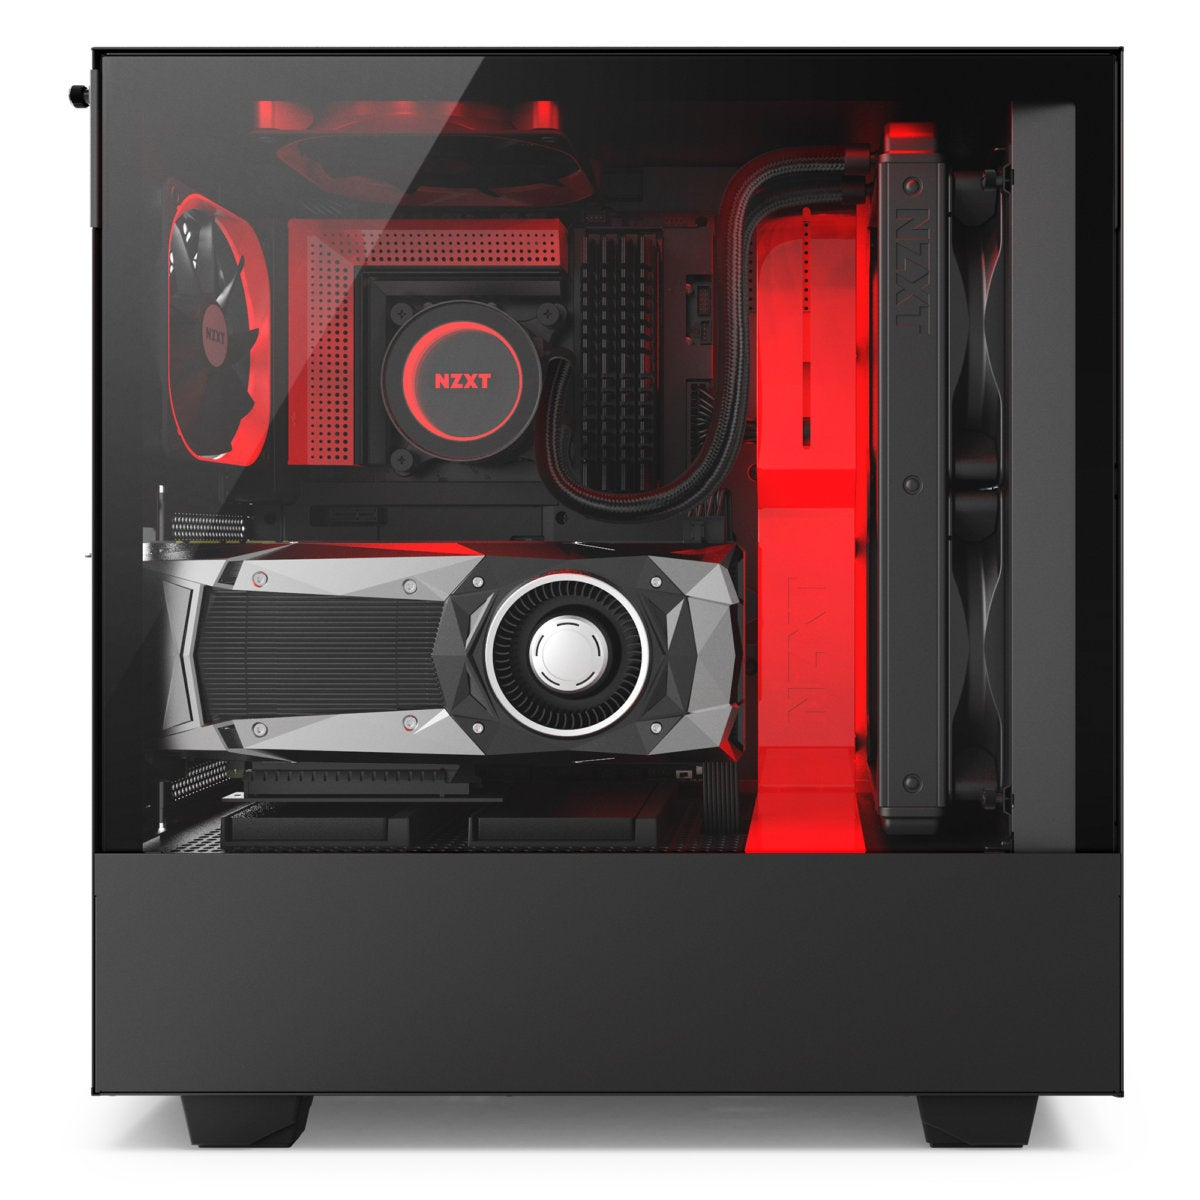 h500i black red with system side